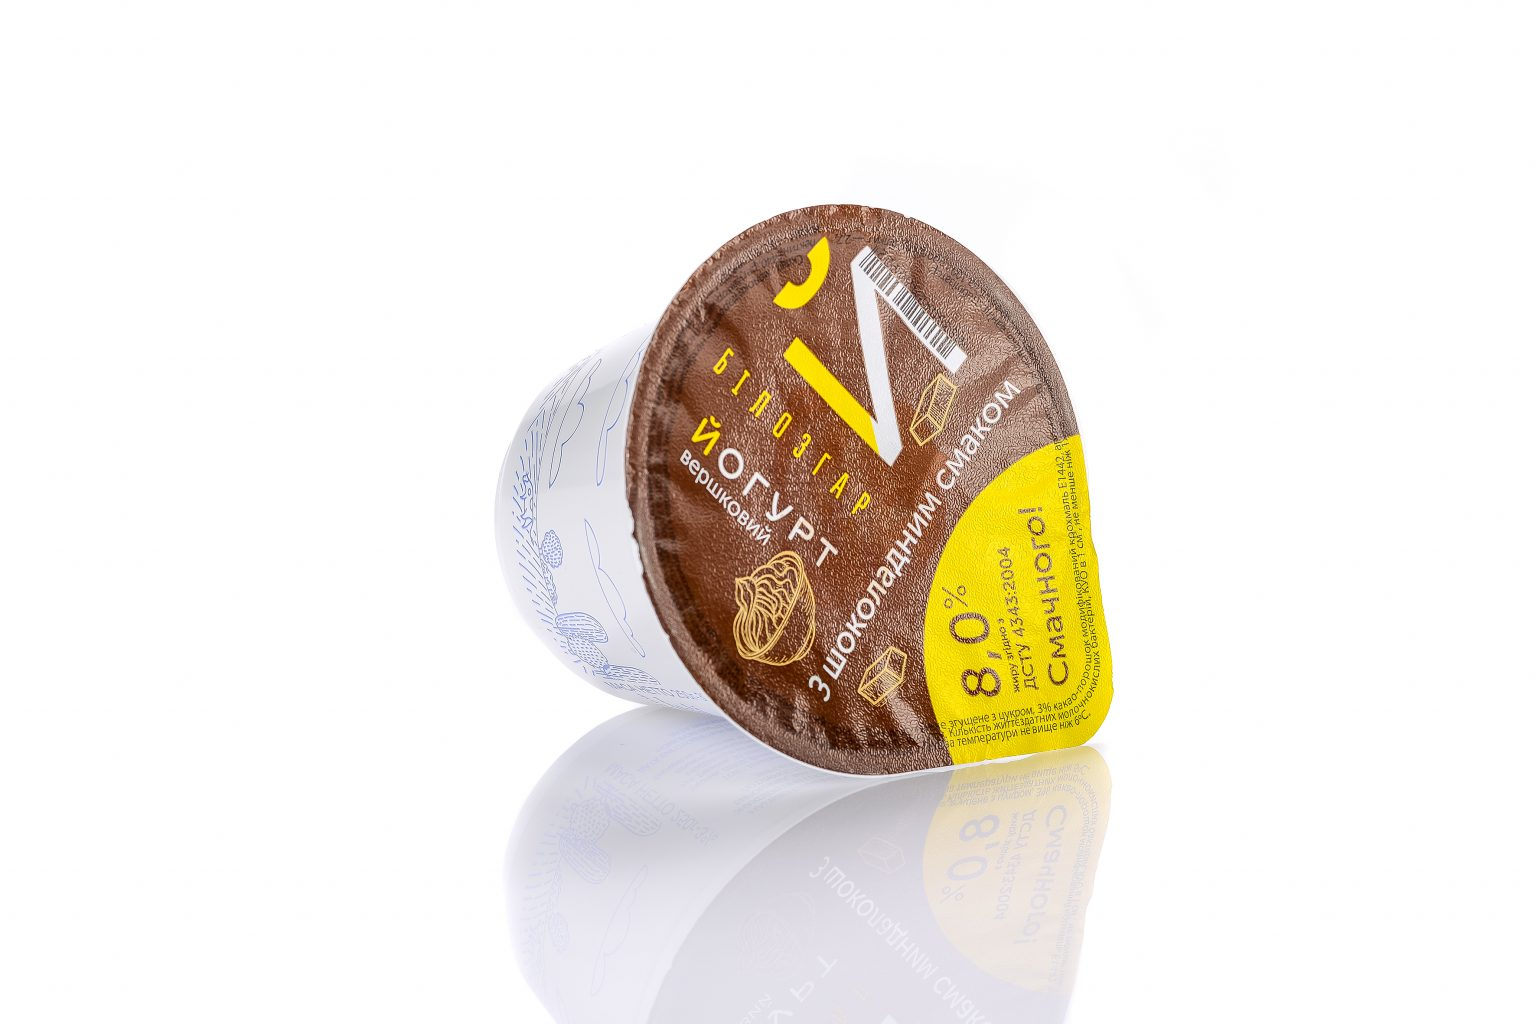 Chocolate 8 % fat creamy yogurt, 250g